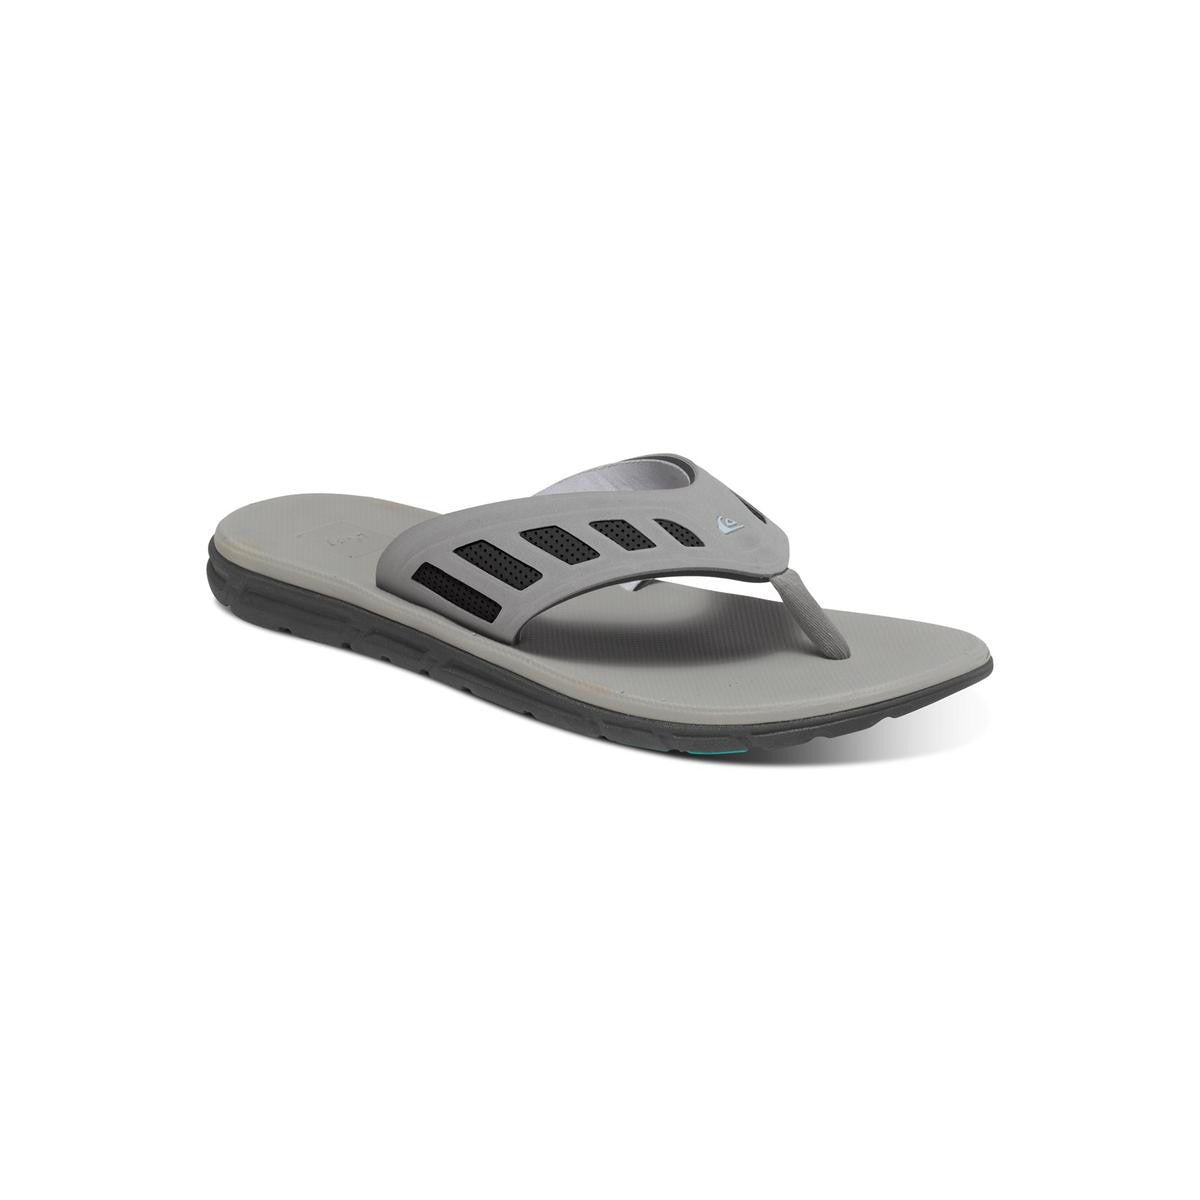 Quiksilver AG47 Flux Men's Sandals